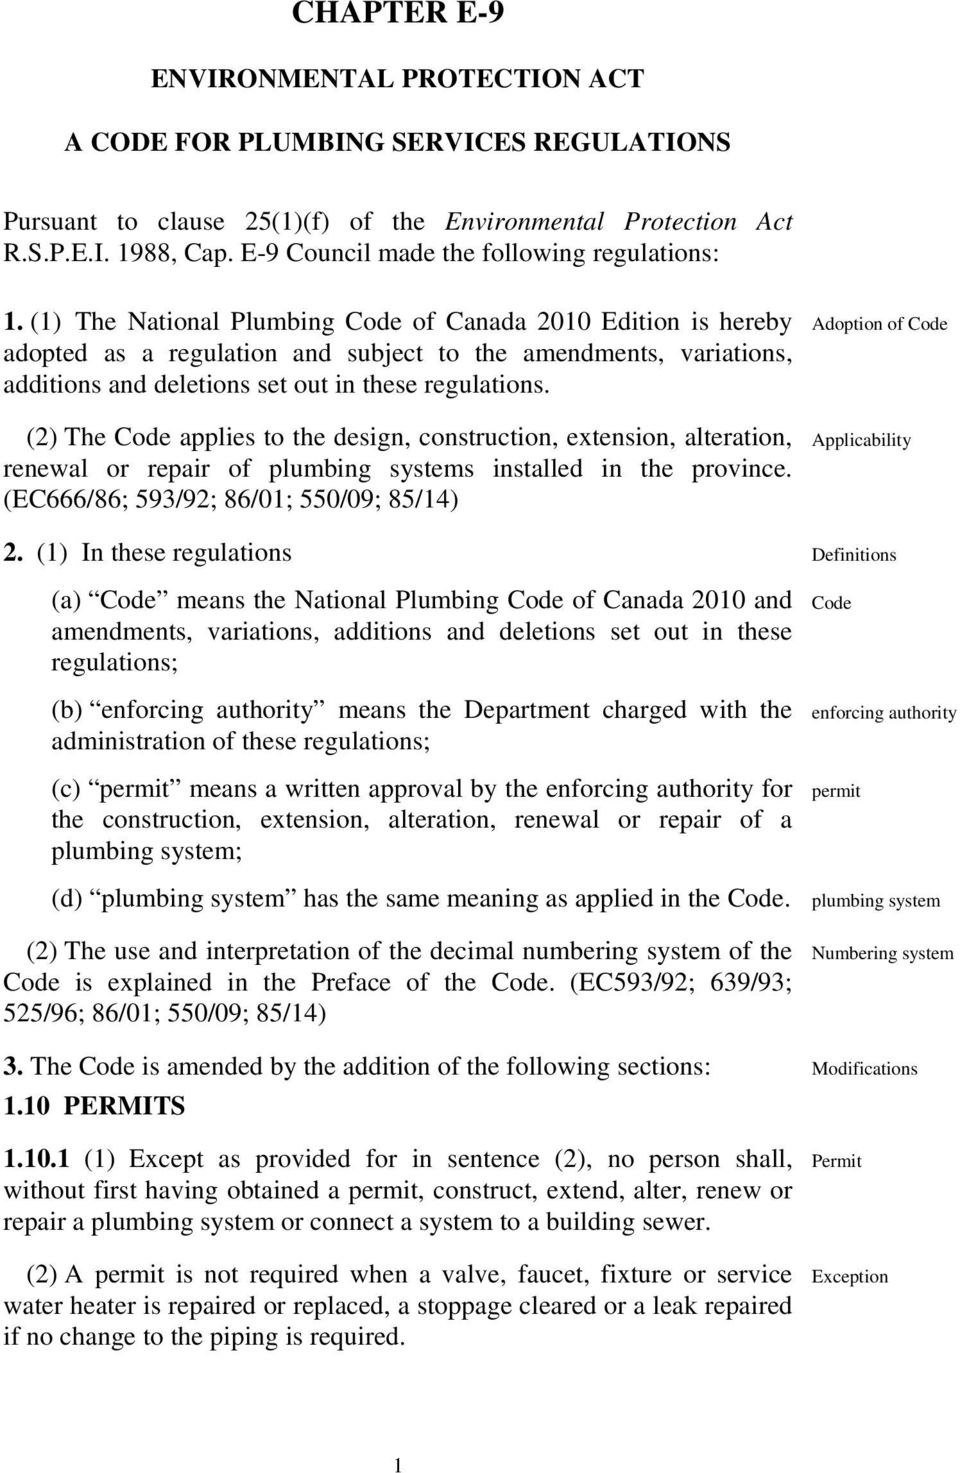 (1) The National Plumbing Code of Canada 2010 Edition is hereby adopted as a regulation and subject to the amendments, variations, additions and deletions set out in these regulations.